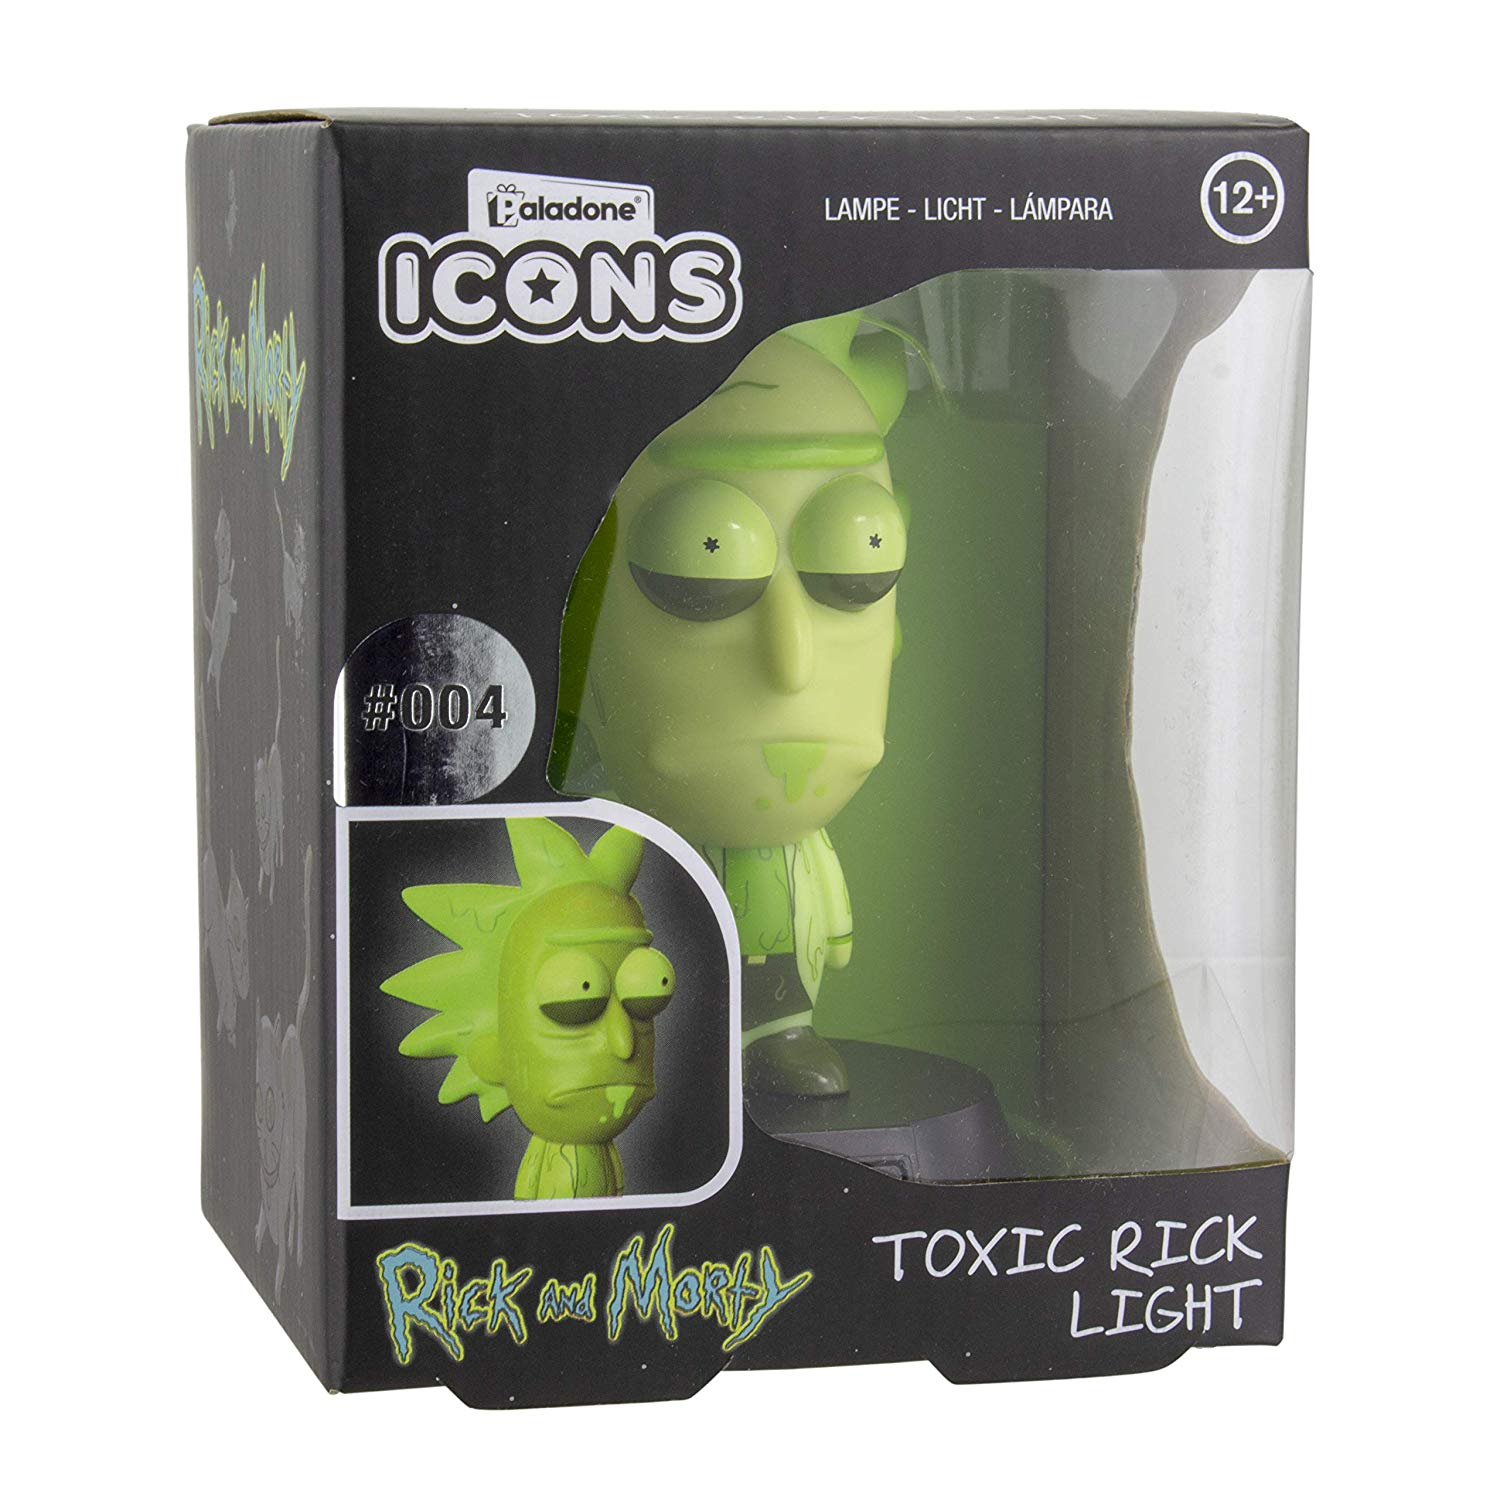 Toxic Rick Icon 3D LED Light | Collectible Rick & Morty Lights | Ideal Night Light for Kids Bedrooms, Office & Home | Paladone Pop Culture Lighting Merchandise